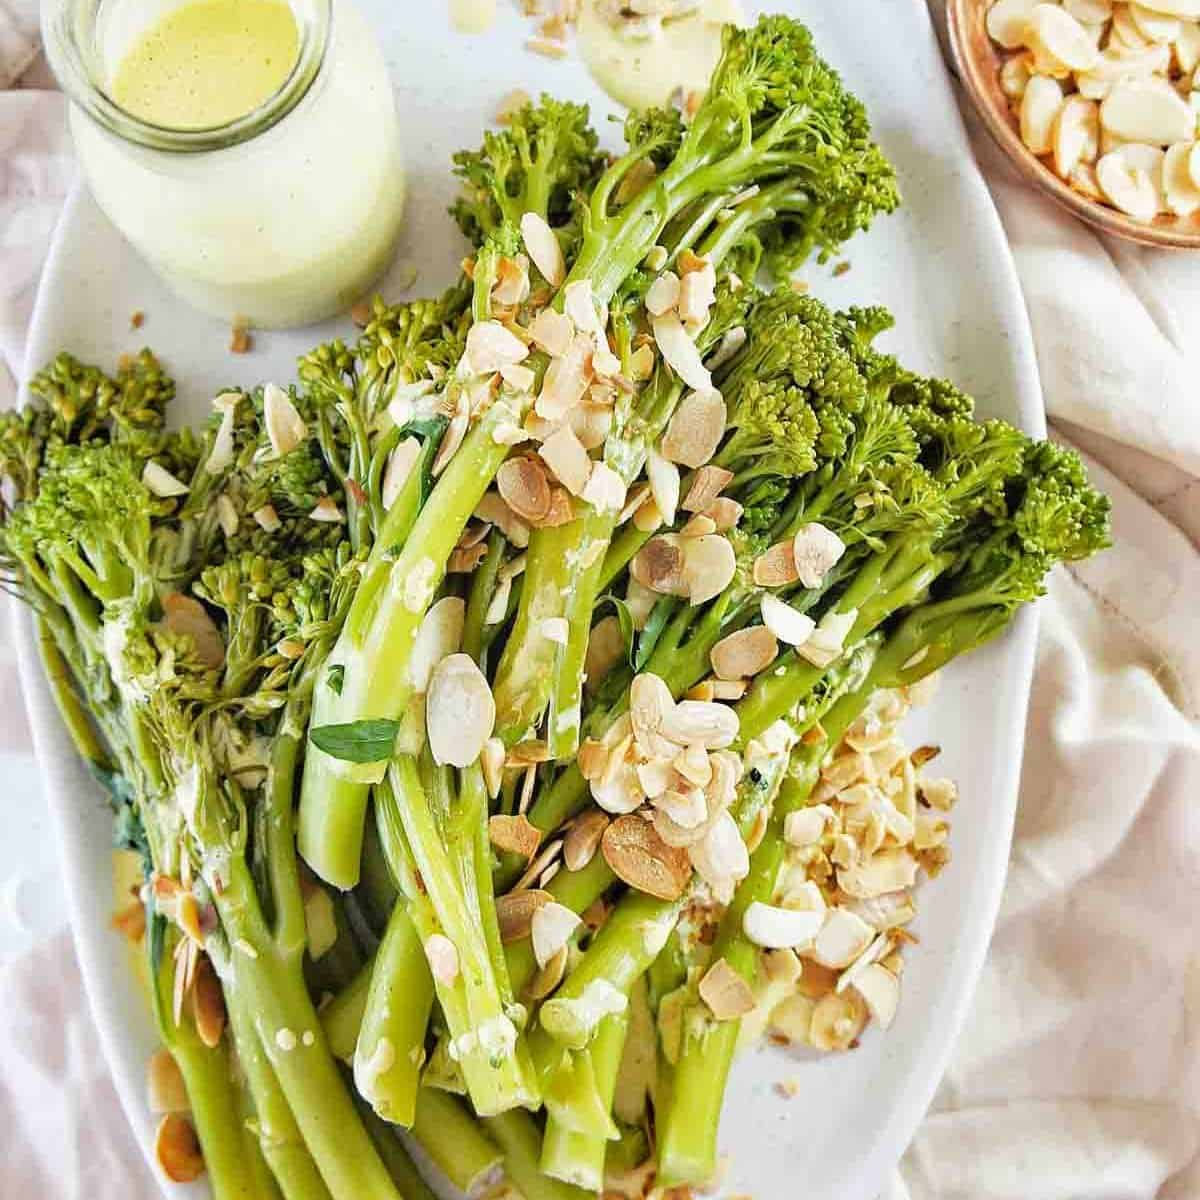 Steamed Broccolini on a white plate